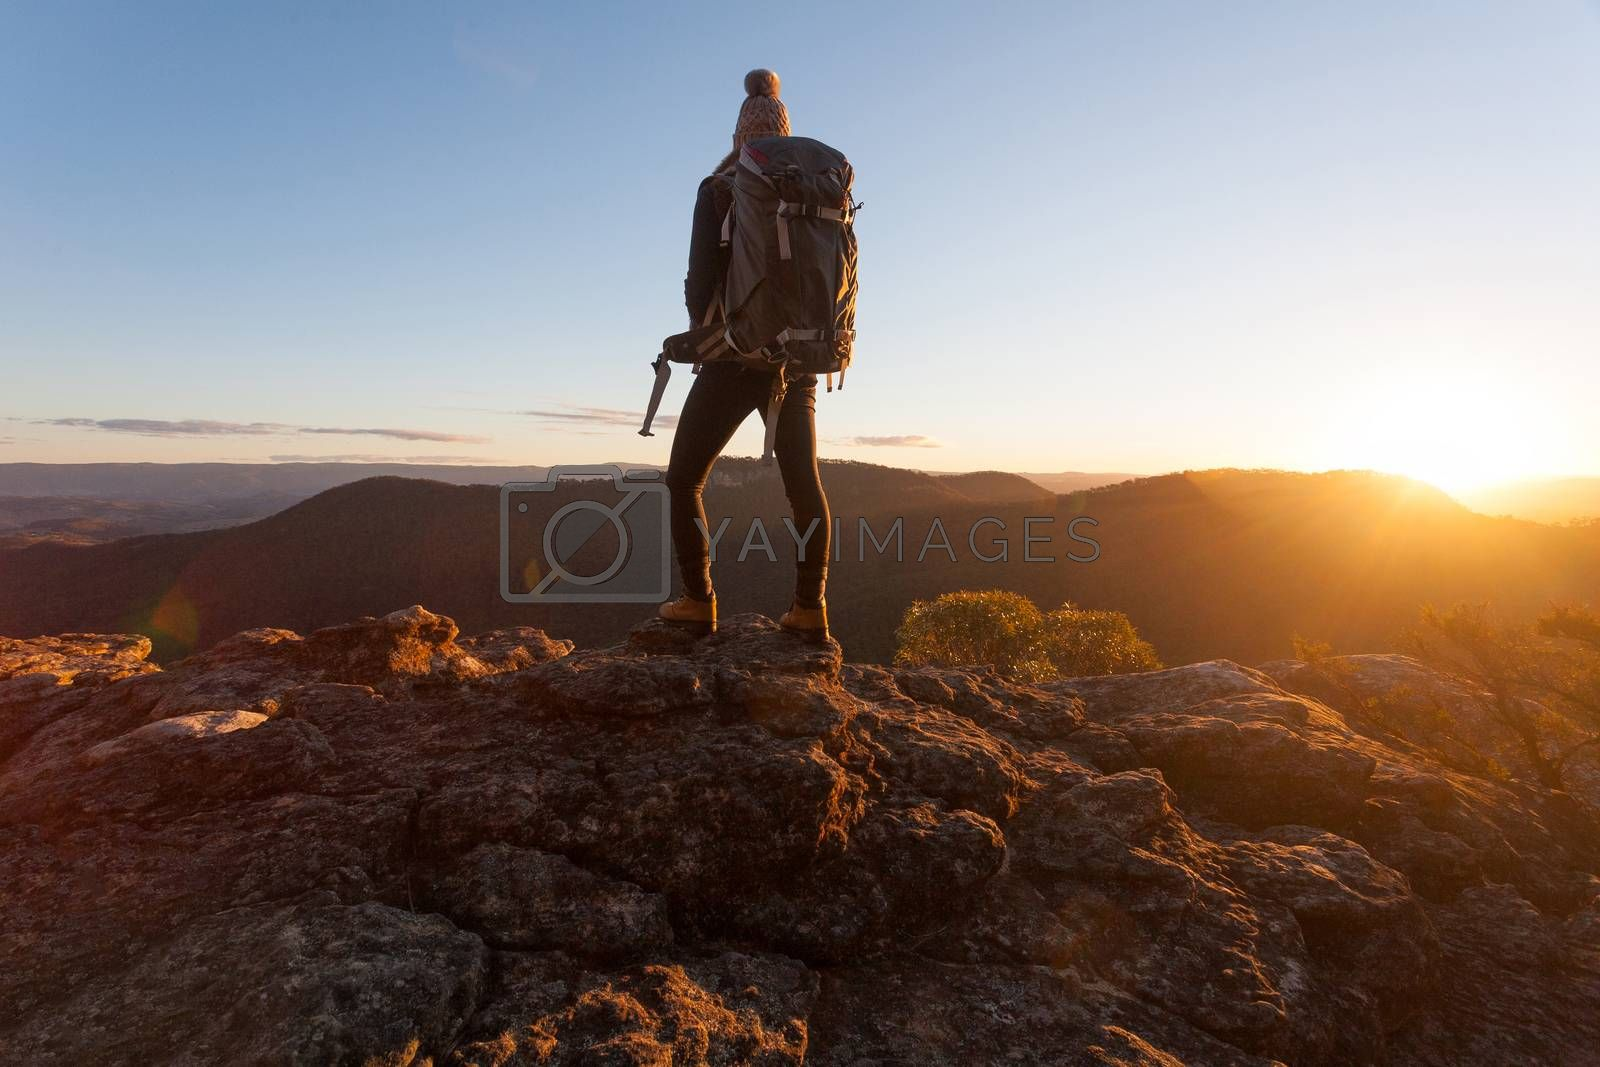 Nothing can substitute experience.  Standing on the edge of Mt Victoria  as the golden sun dips low on the horizon